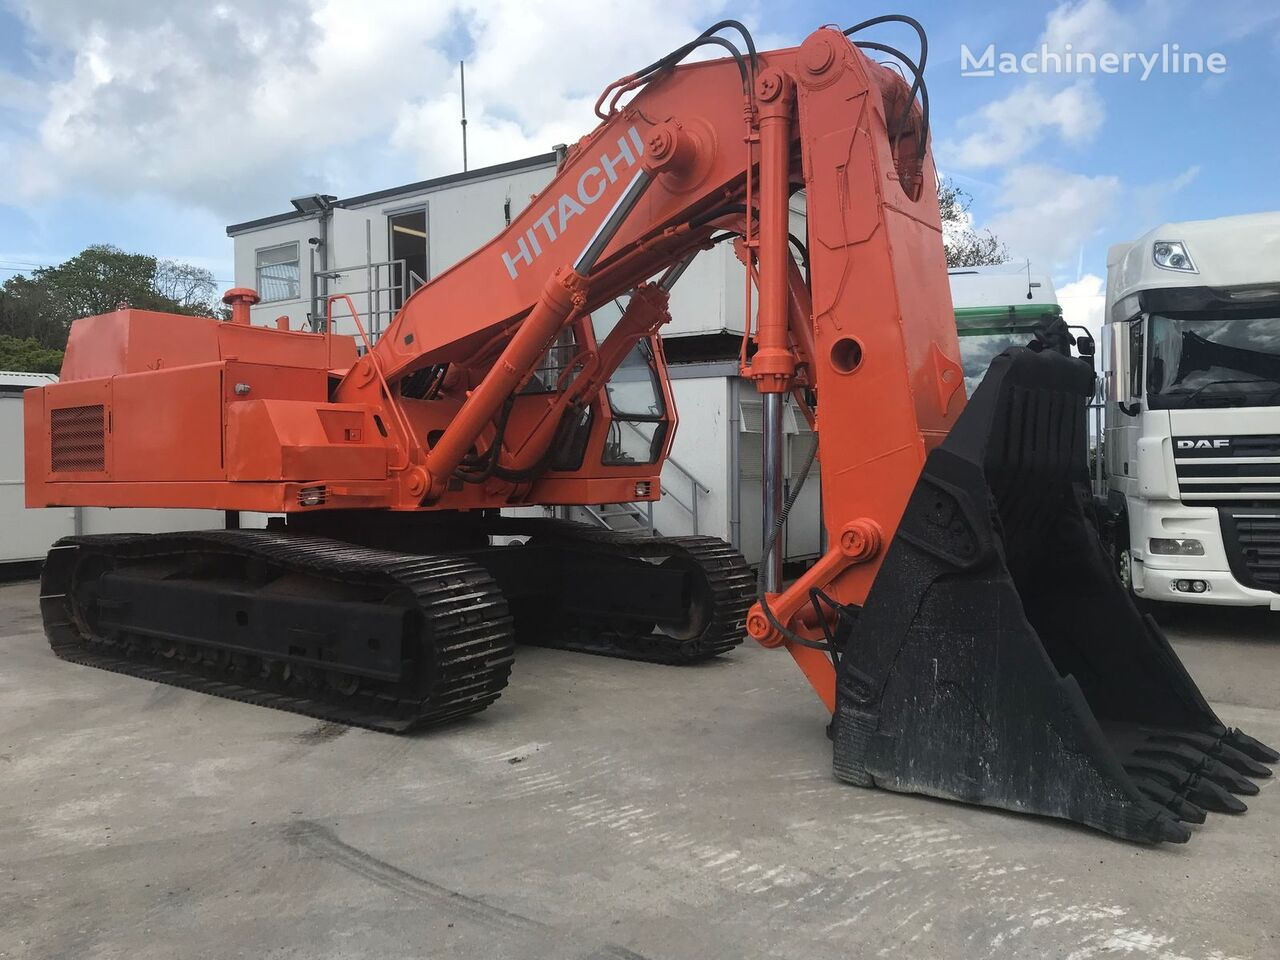 HITACHI UH181 front shovel excavator